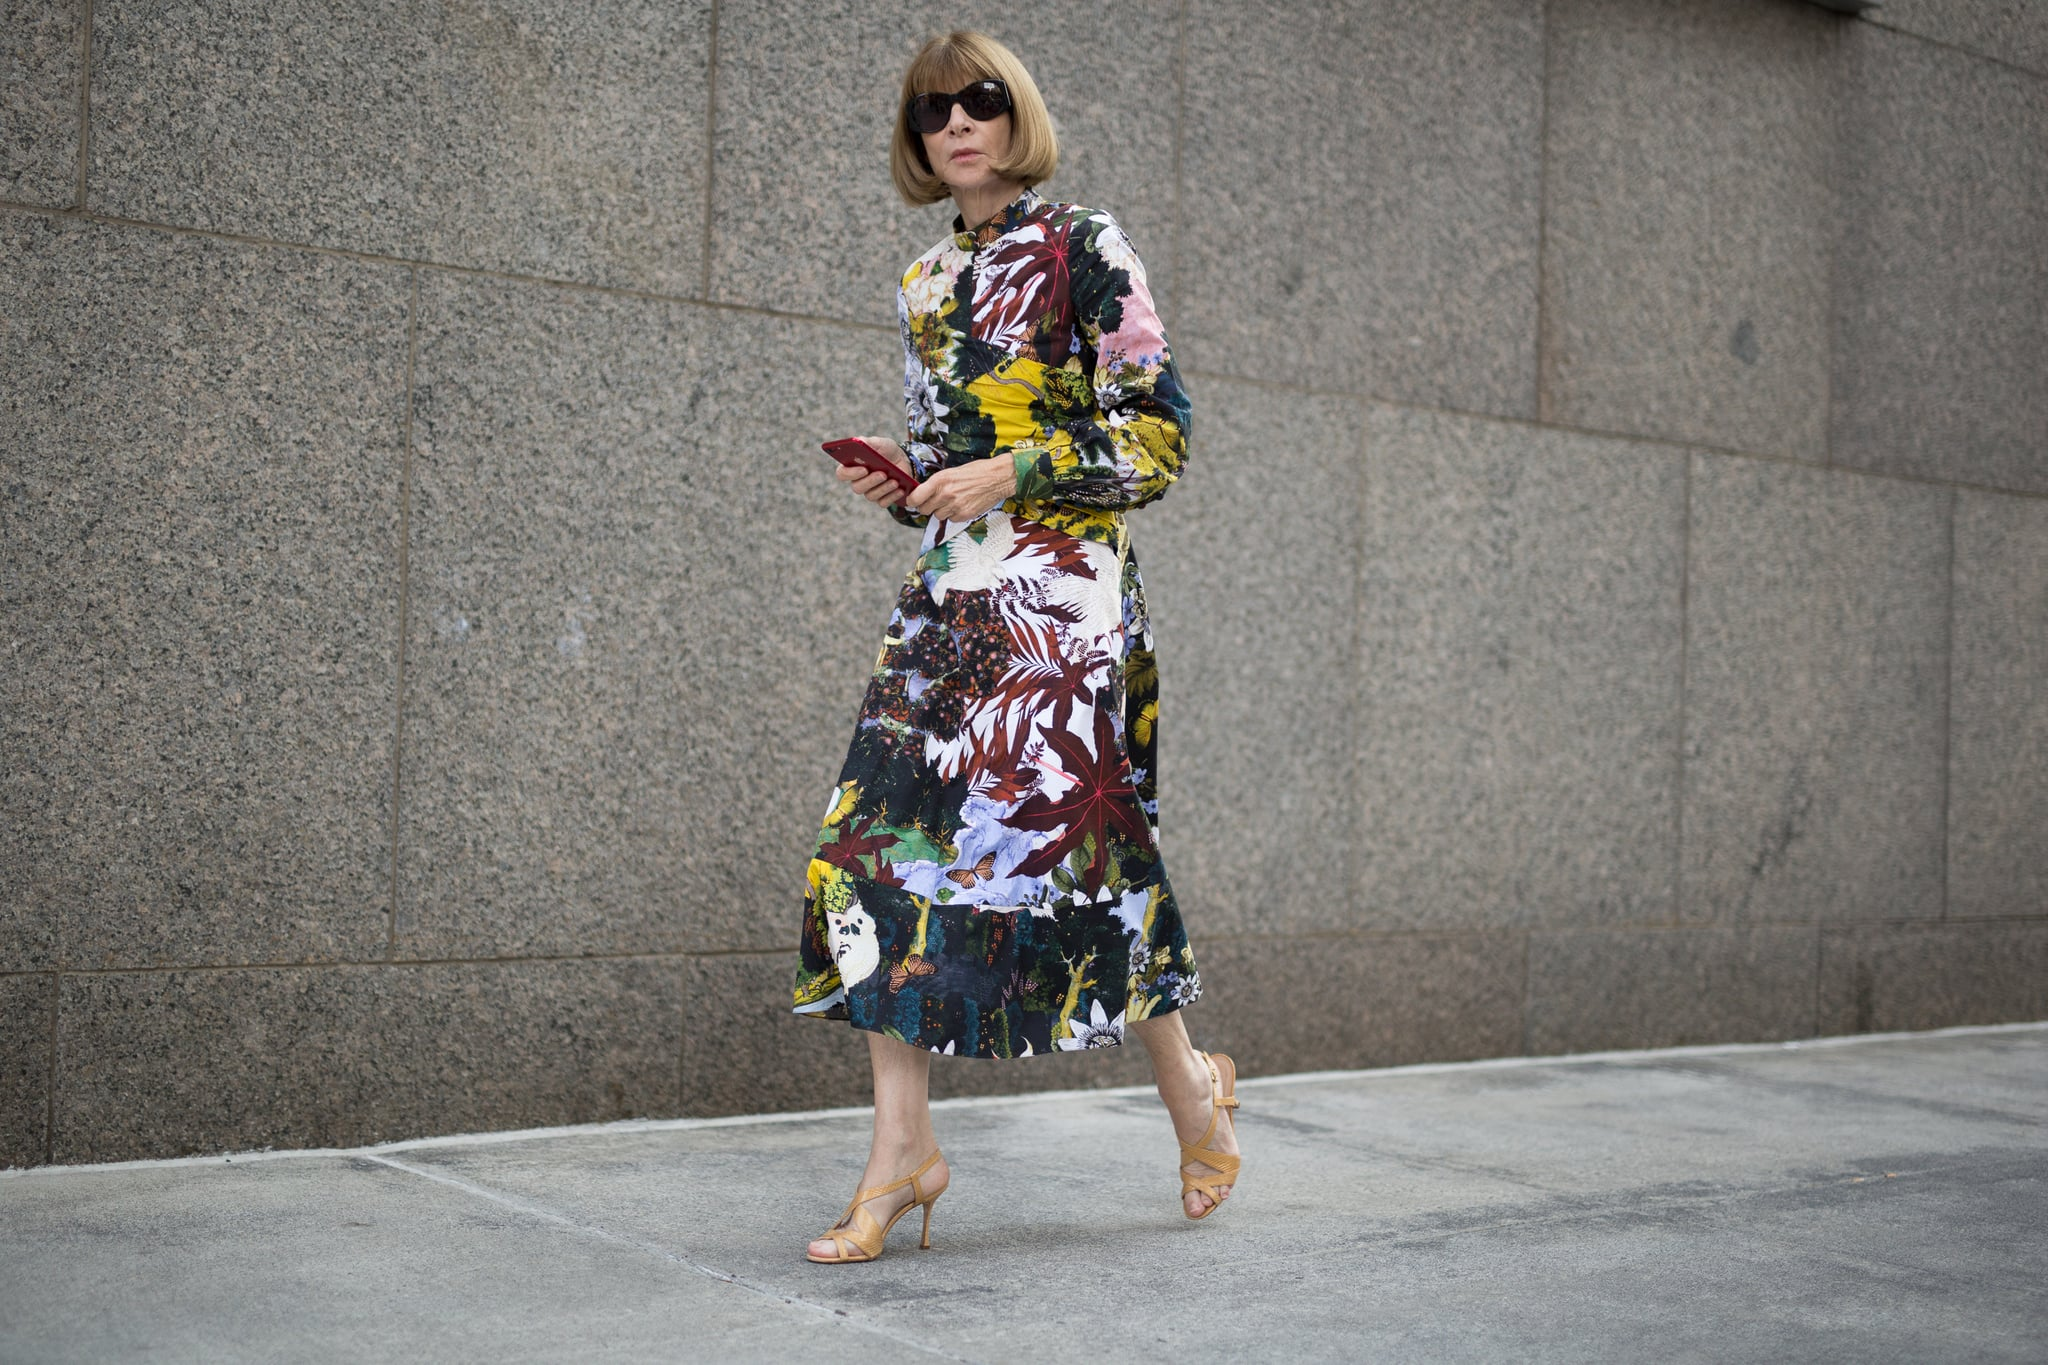 NEW YORK, NY - SEPTEMBER 11:  Anna Wintour is seen attending Oscar de la Renta during New York Fashion Week wearing Oscar de la Renta on September 11, 2017 in New York City.  (Photo by Matthew Sperzel/Getty Images)